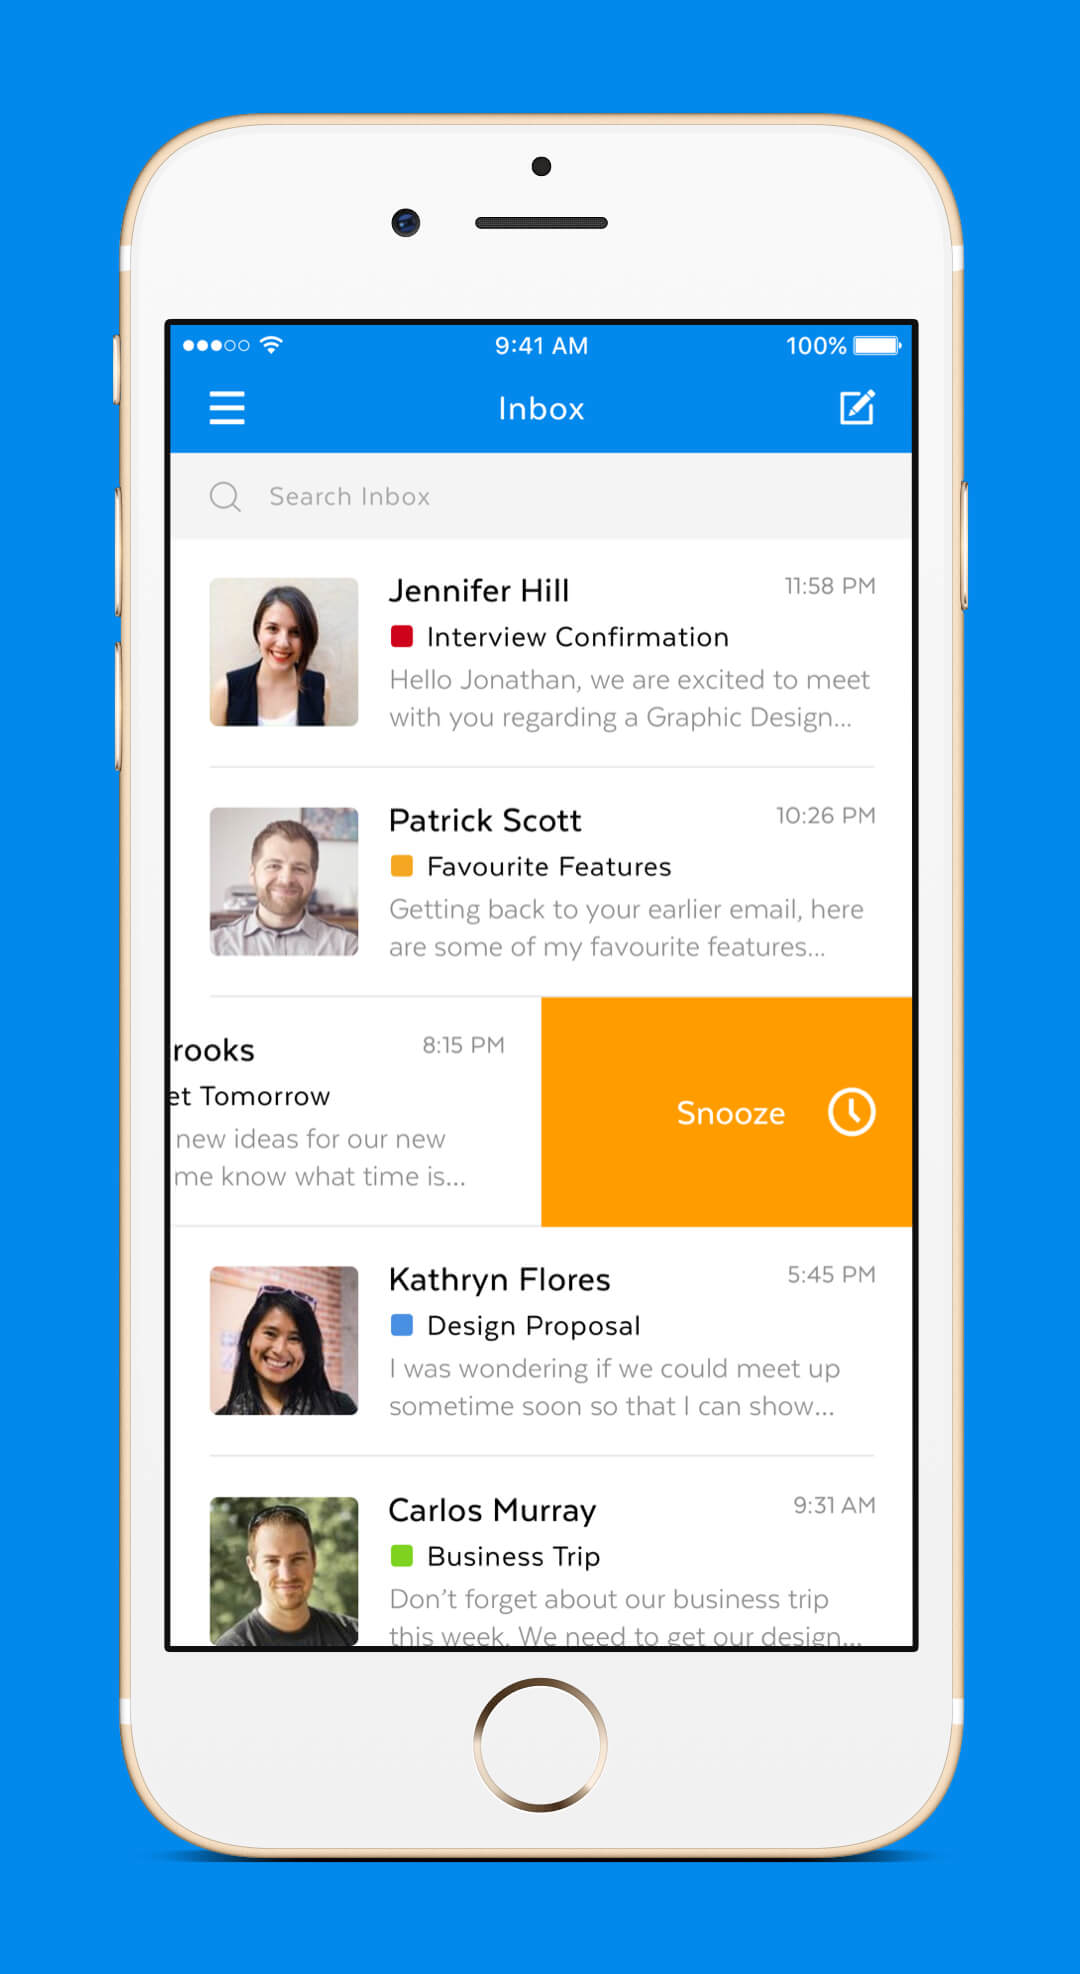 Mobile Mail App - Inbox Snooze